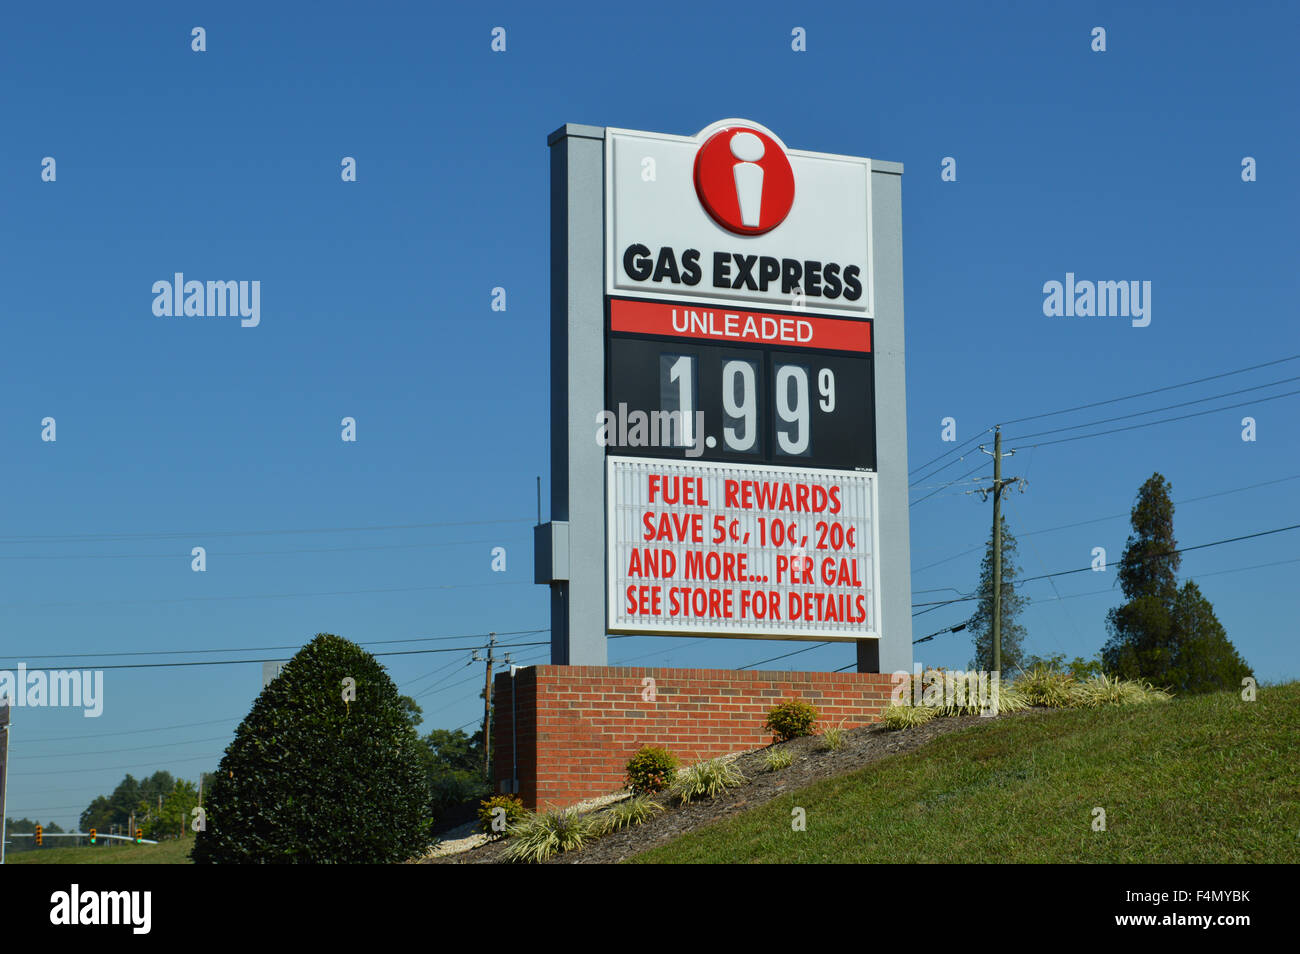 Low Gas Prices >> Low Gas Prices Stock Photos Low Gas Prices Stock Images Alamy